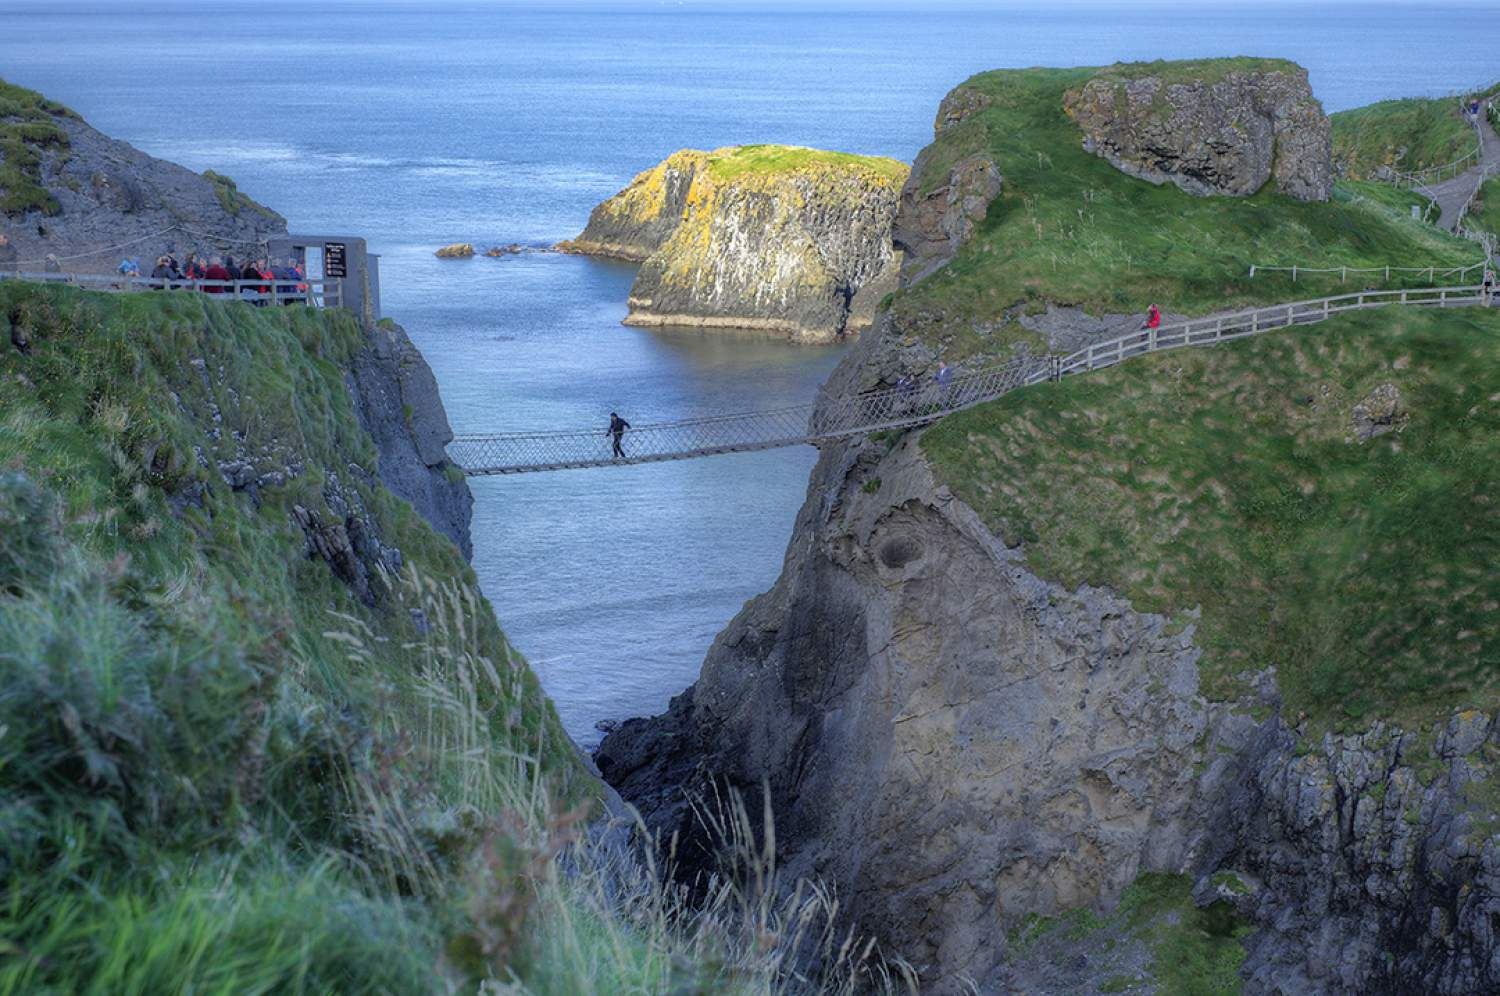 Carrick e Rede Bridge between two cliffs